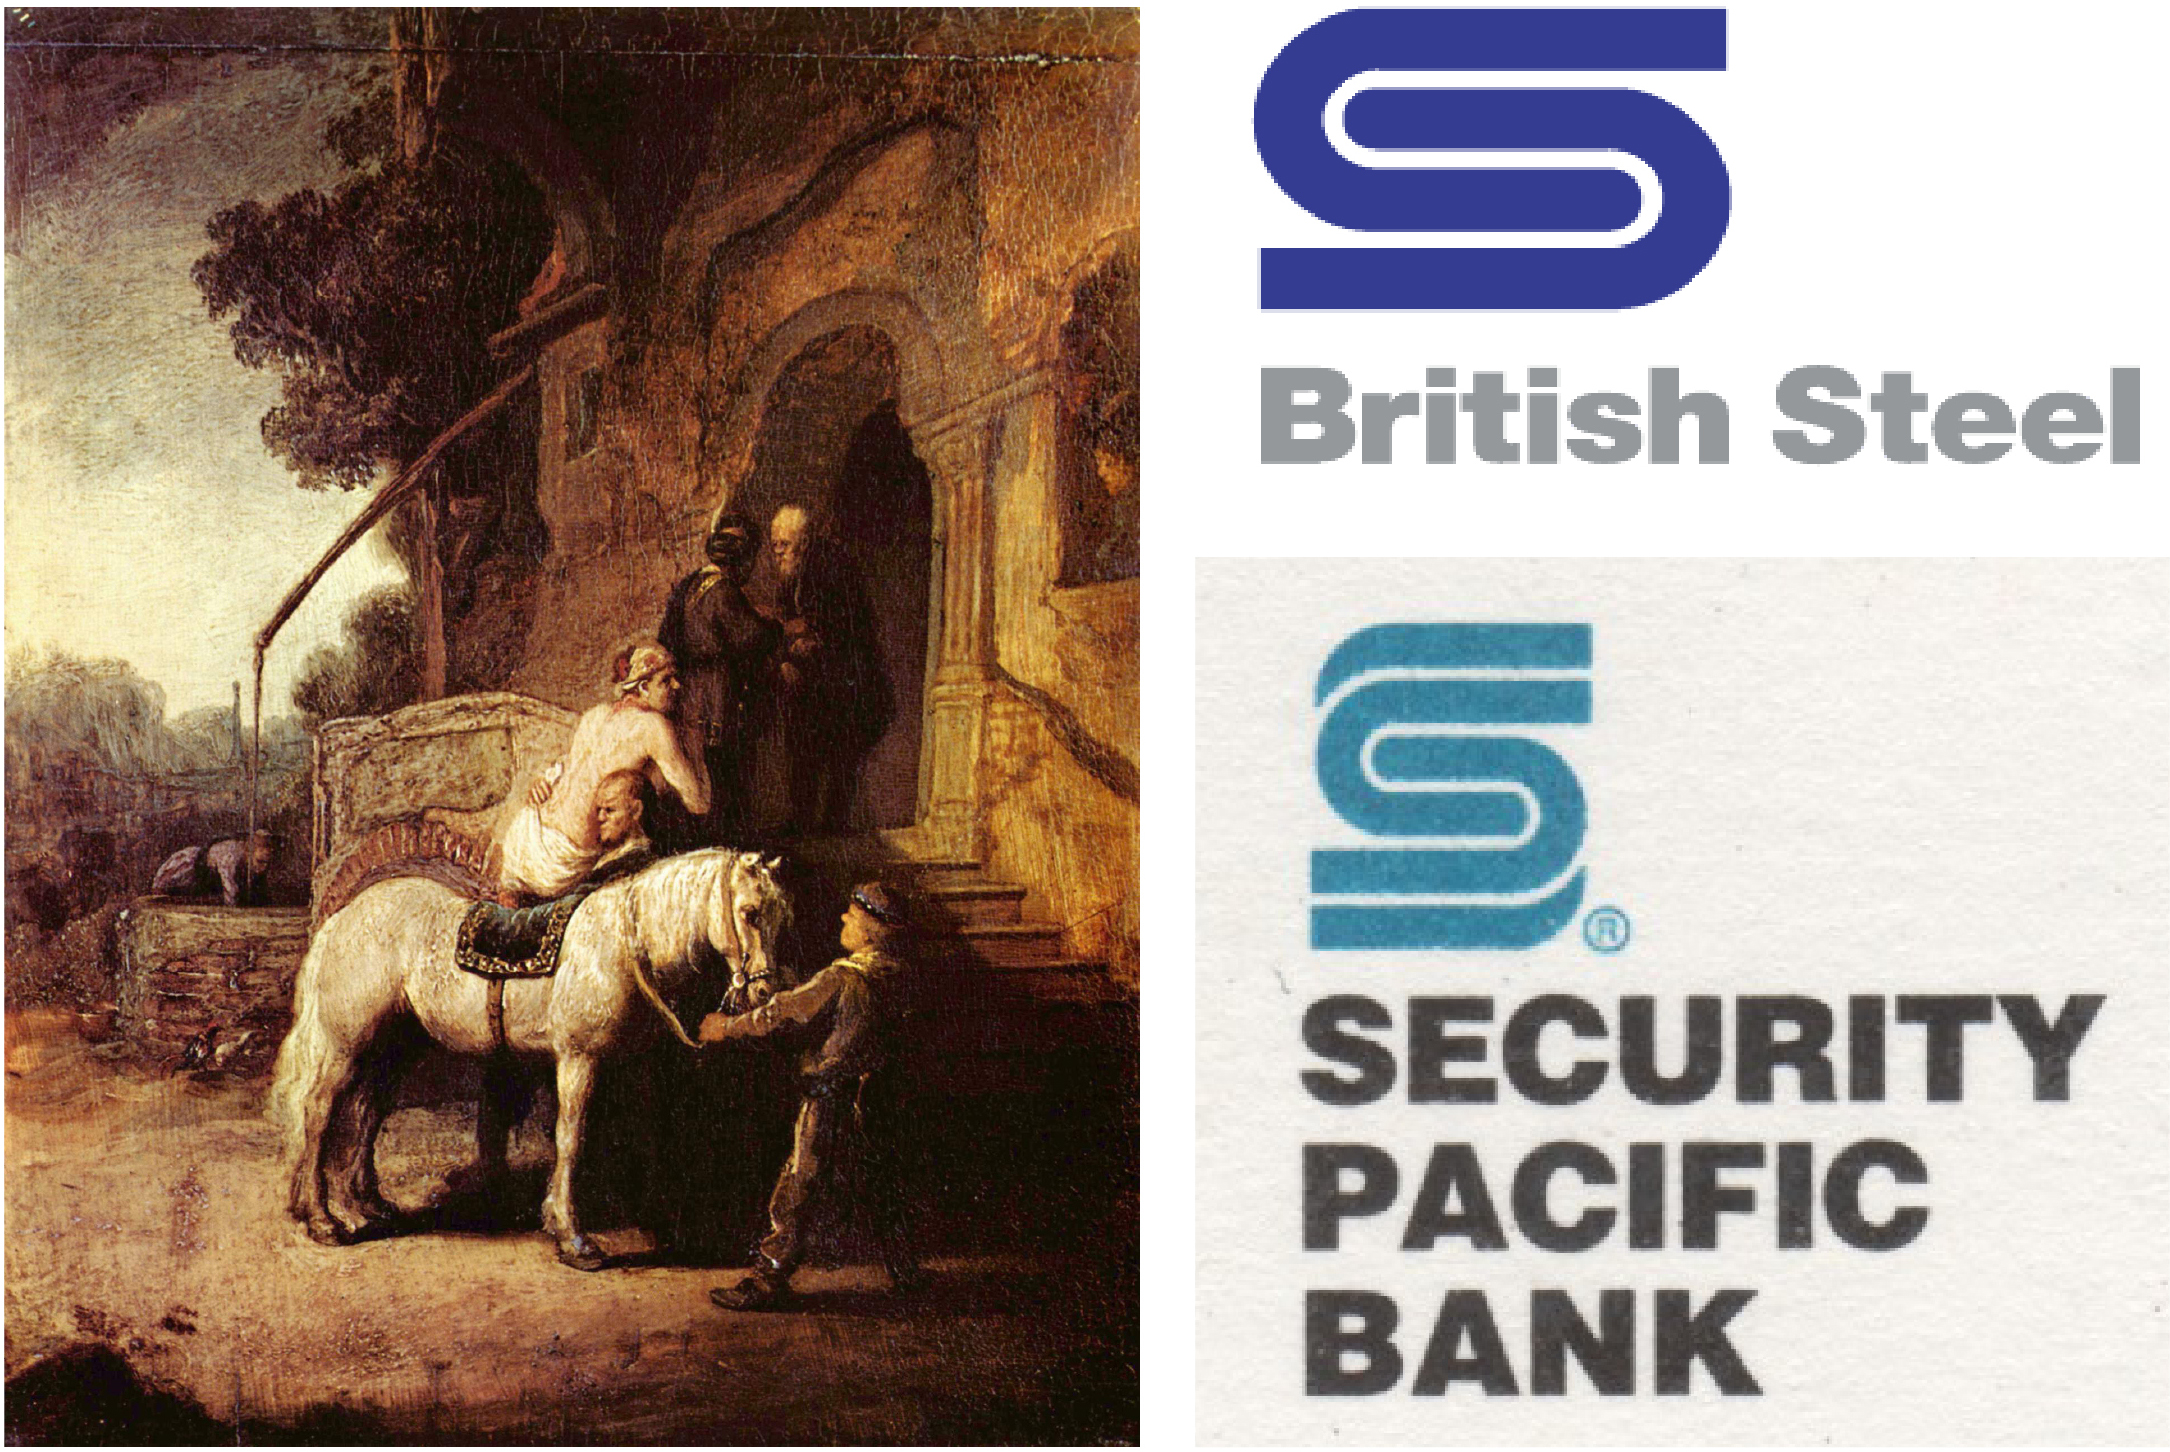 Security pacific bank logo clipart picture free stock Christian – Burglar Alarm Britain picture free stock